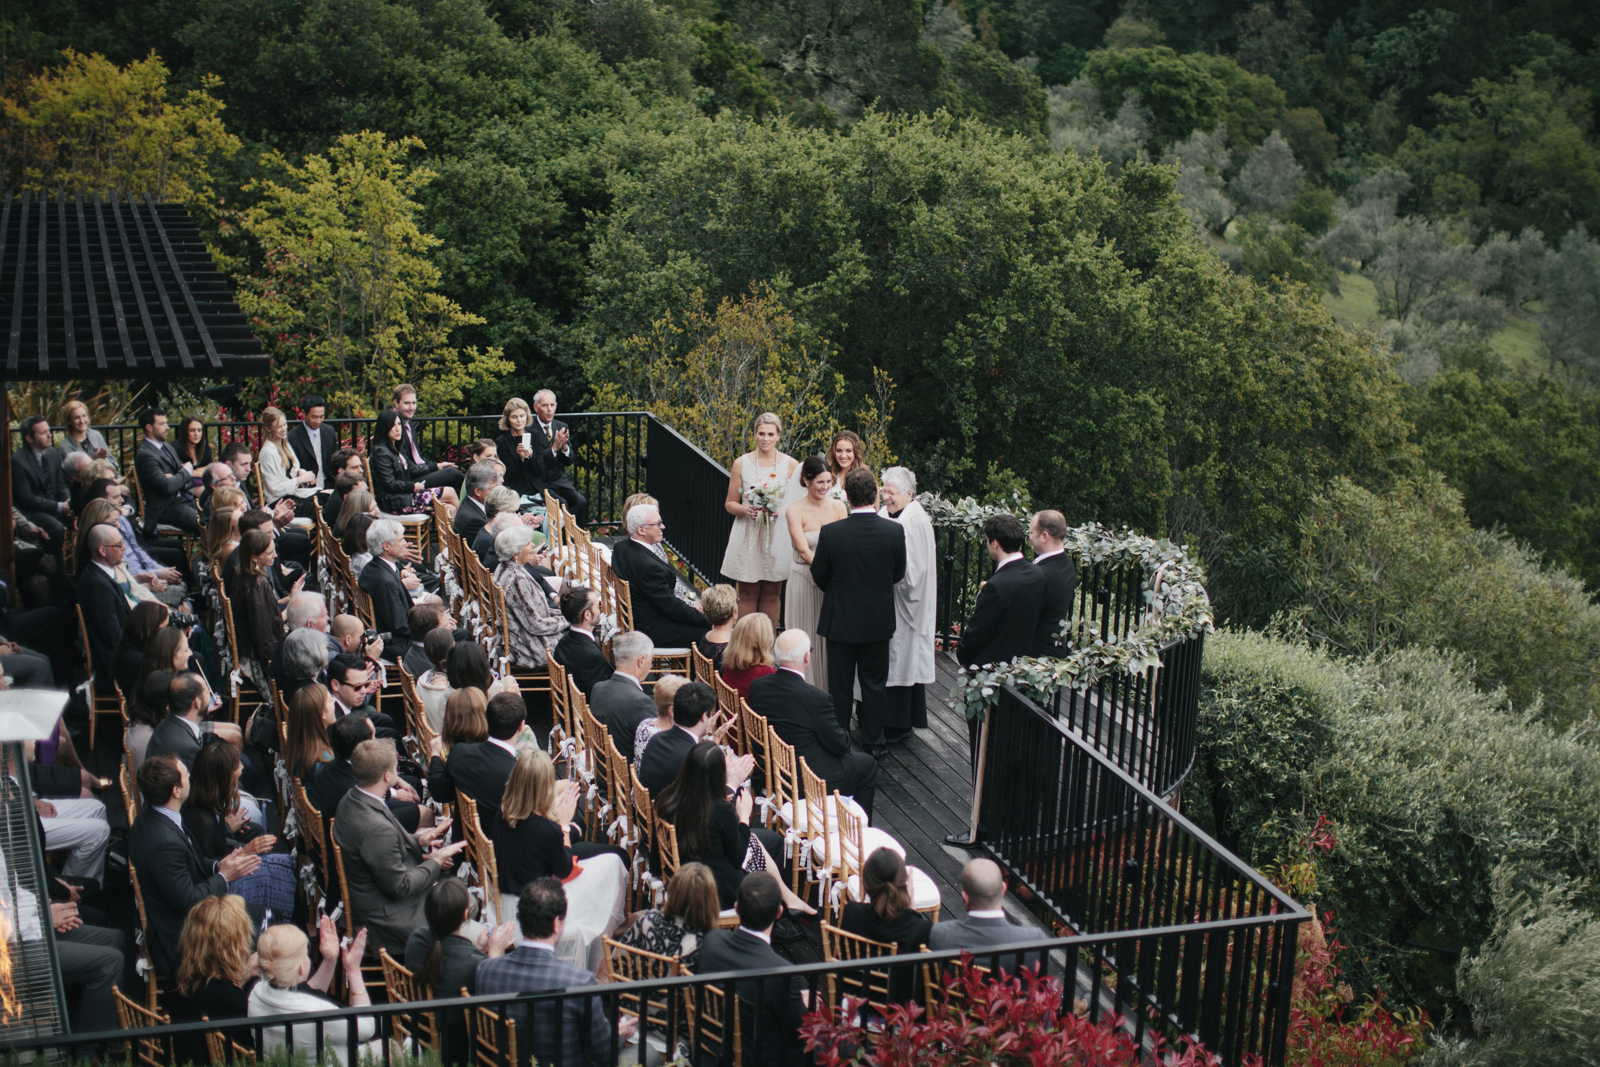 San Francisco - Napa Valley Wedding Photographer - For the Love of It-013.jpg